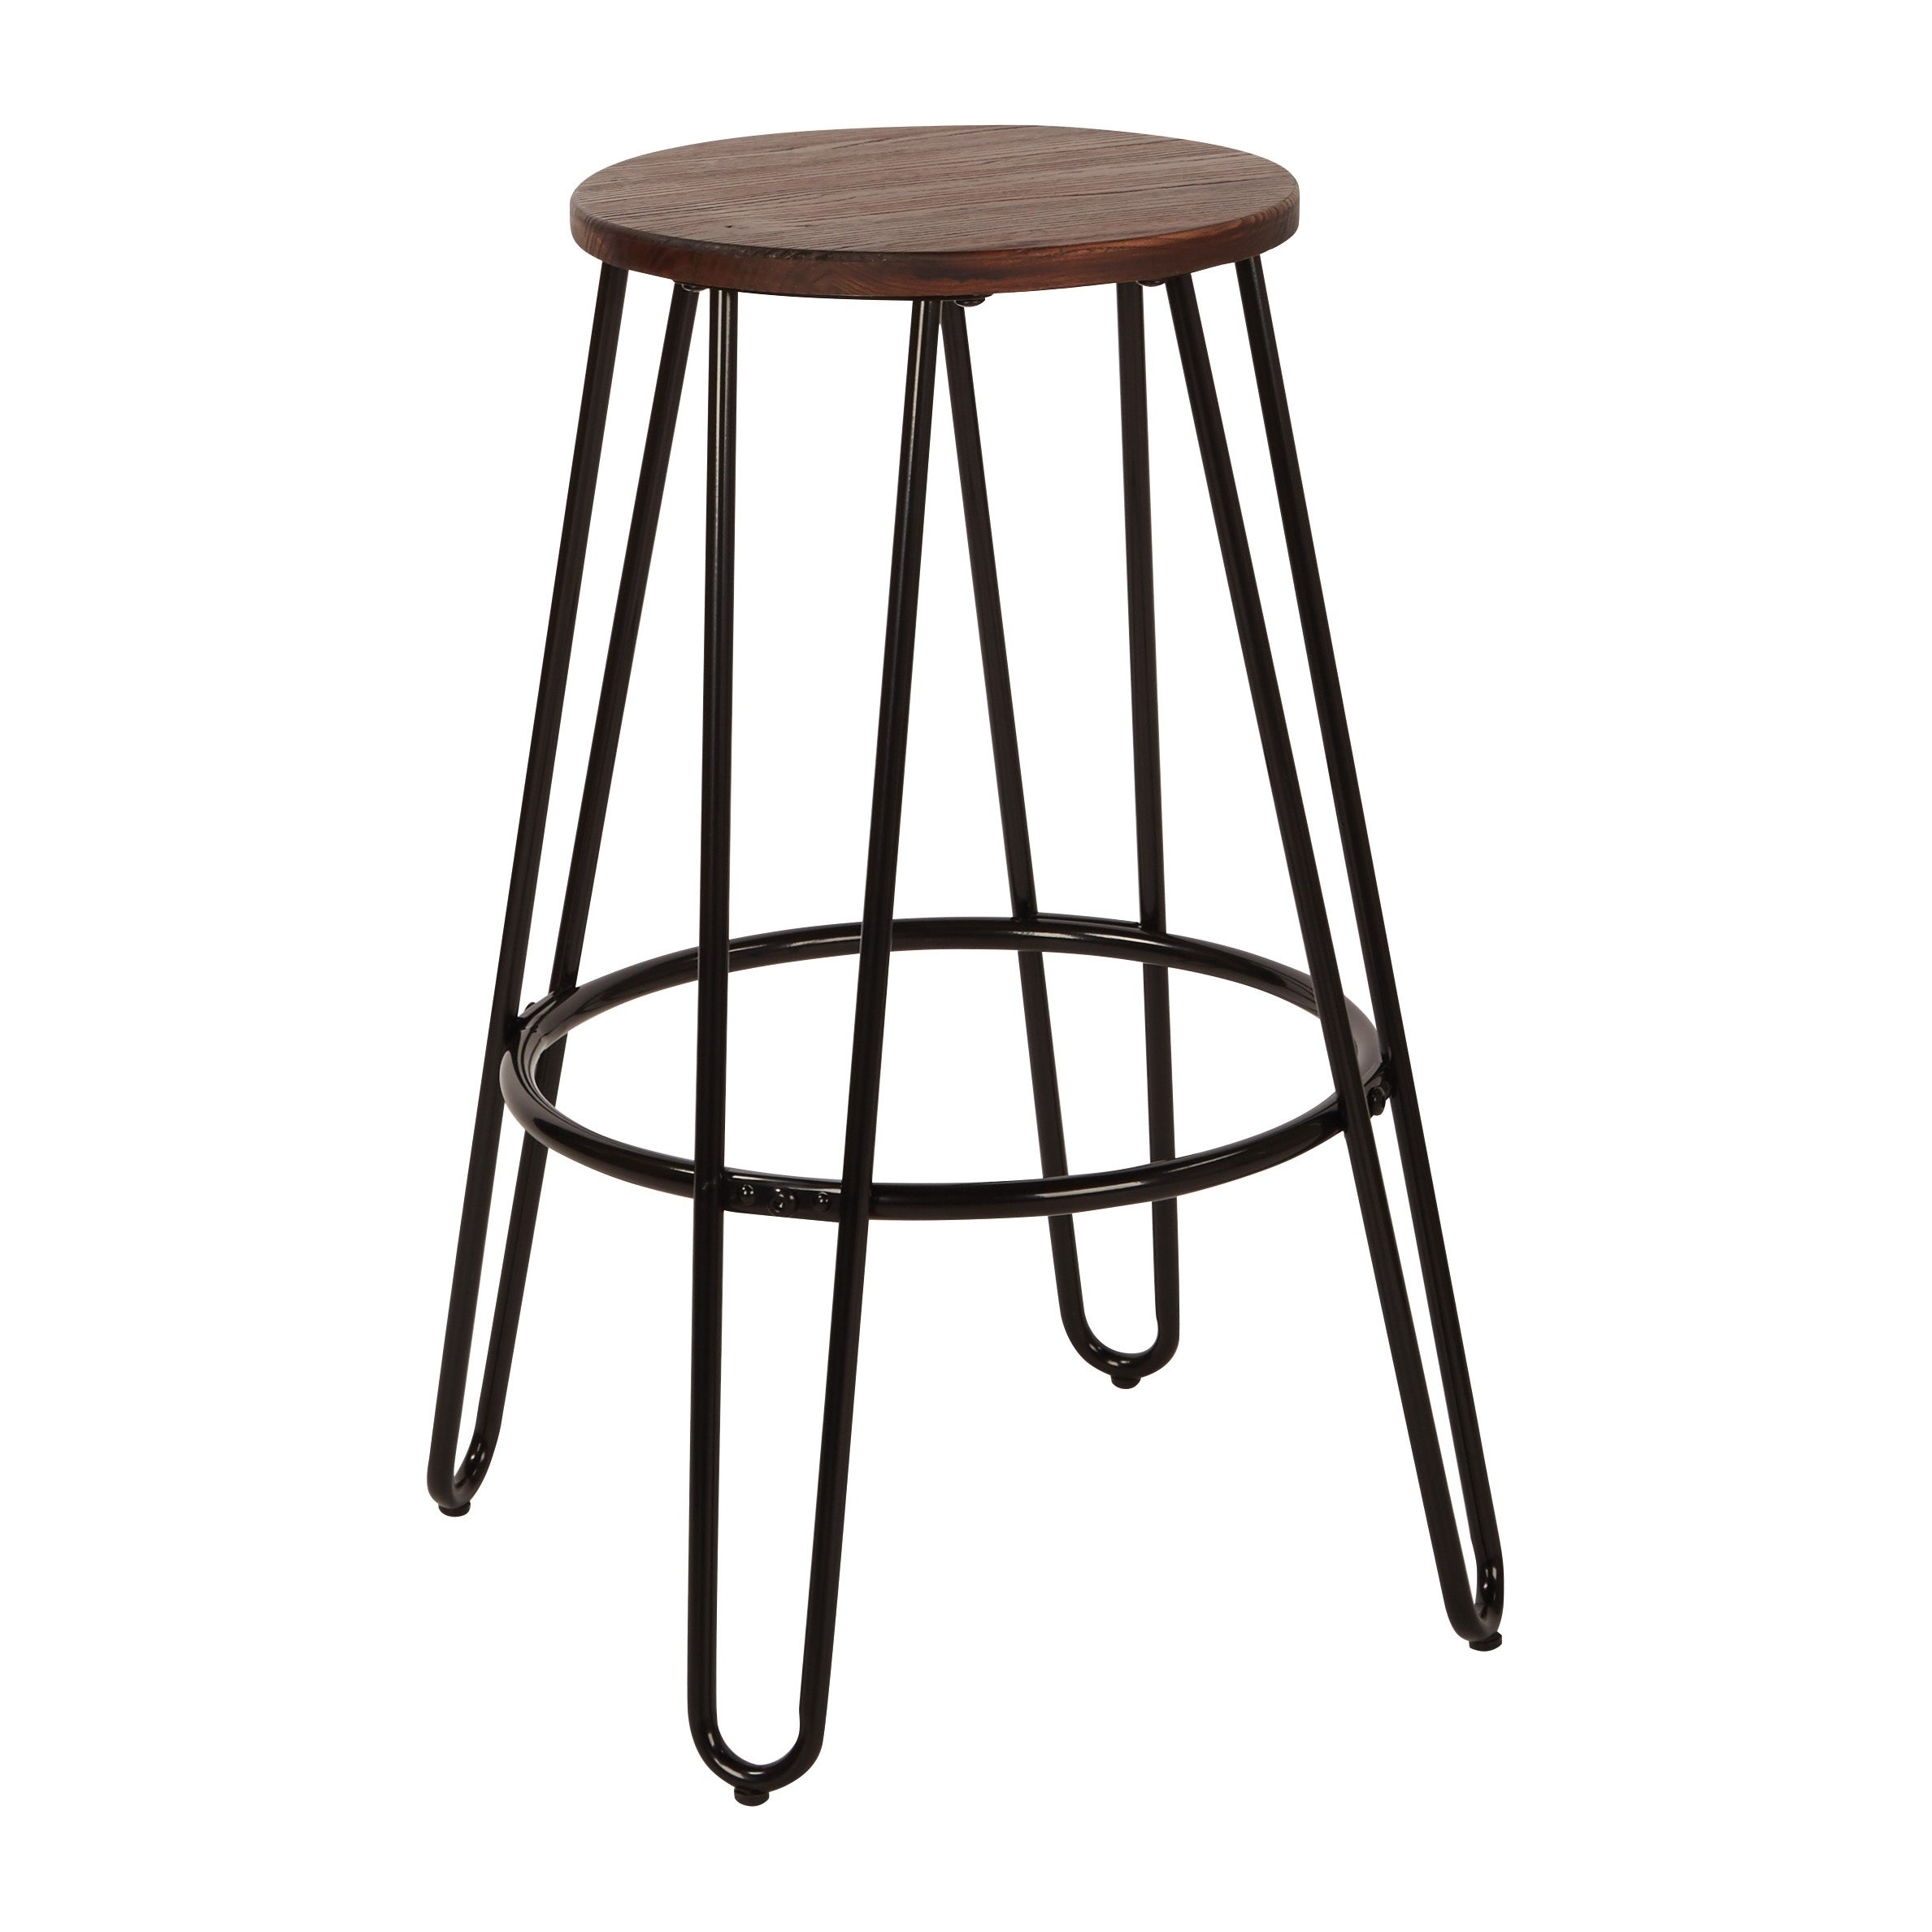 Osp Designs Ashville 26 Inch Counter Stools With Wood Seat 2 Pack